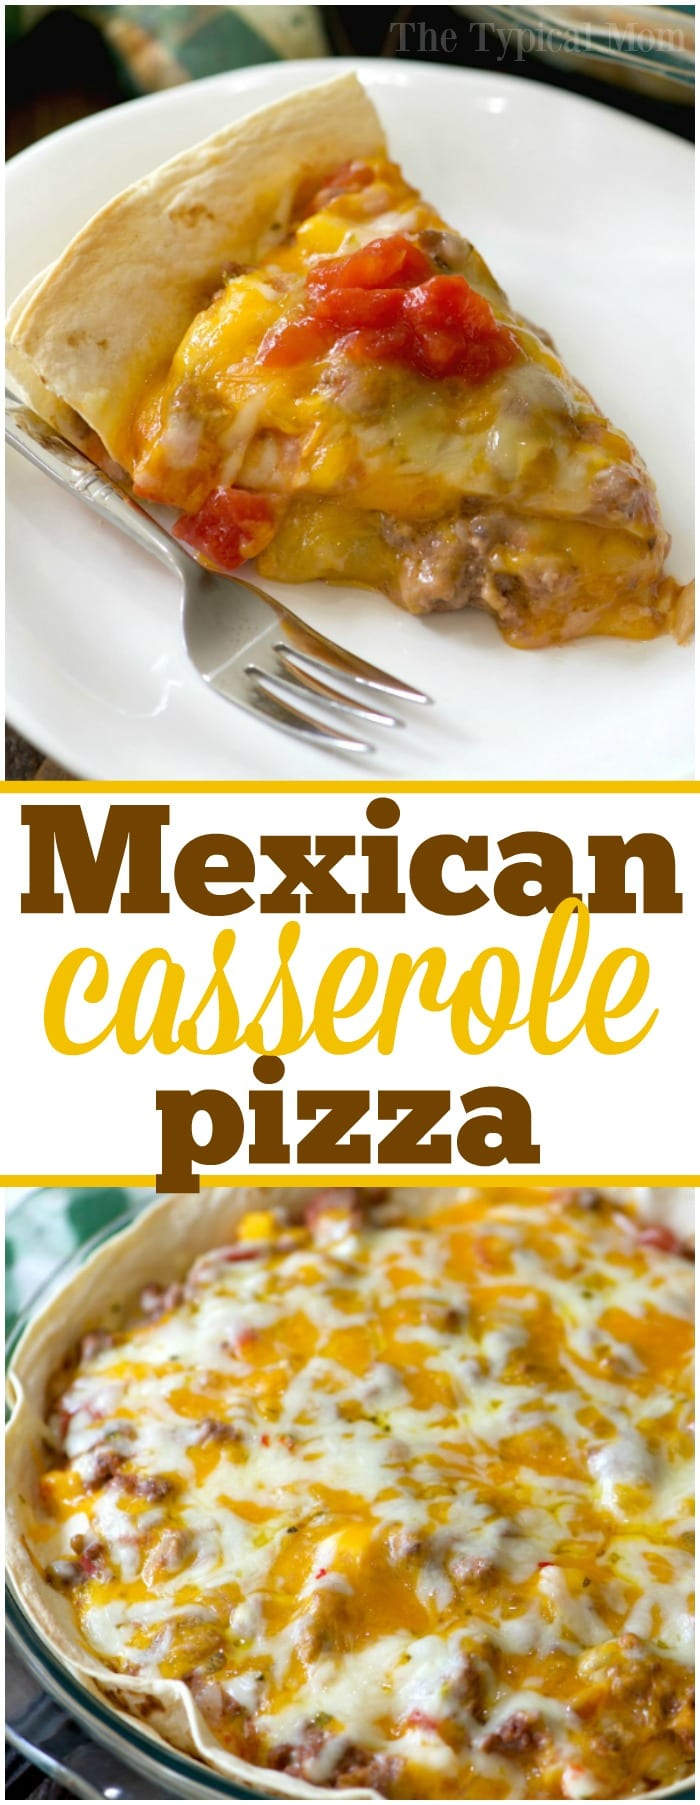 This easy Mexican pizza casserole is just amazing! Cheesy layered tortillas with chunky salsa and beef, it's my family's favorite comfort food! #mexicanpizza #casserole #mexican #pizza #tortilla